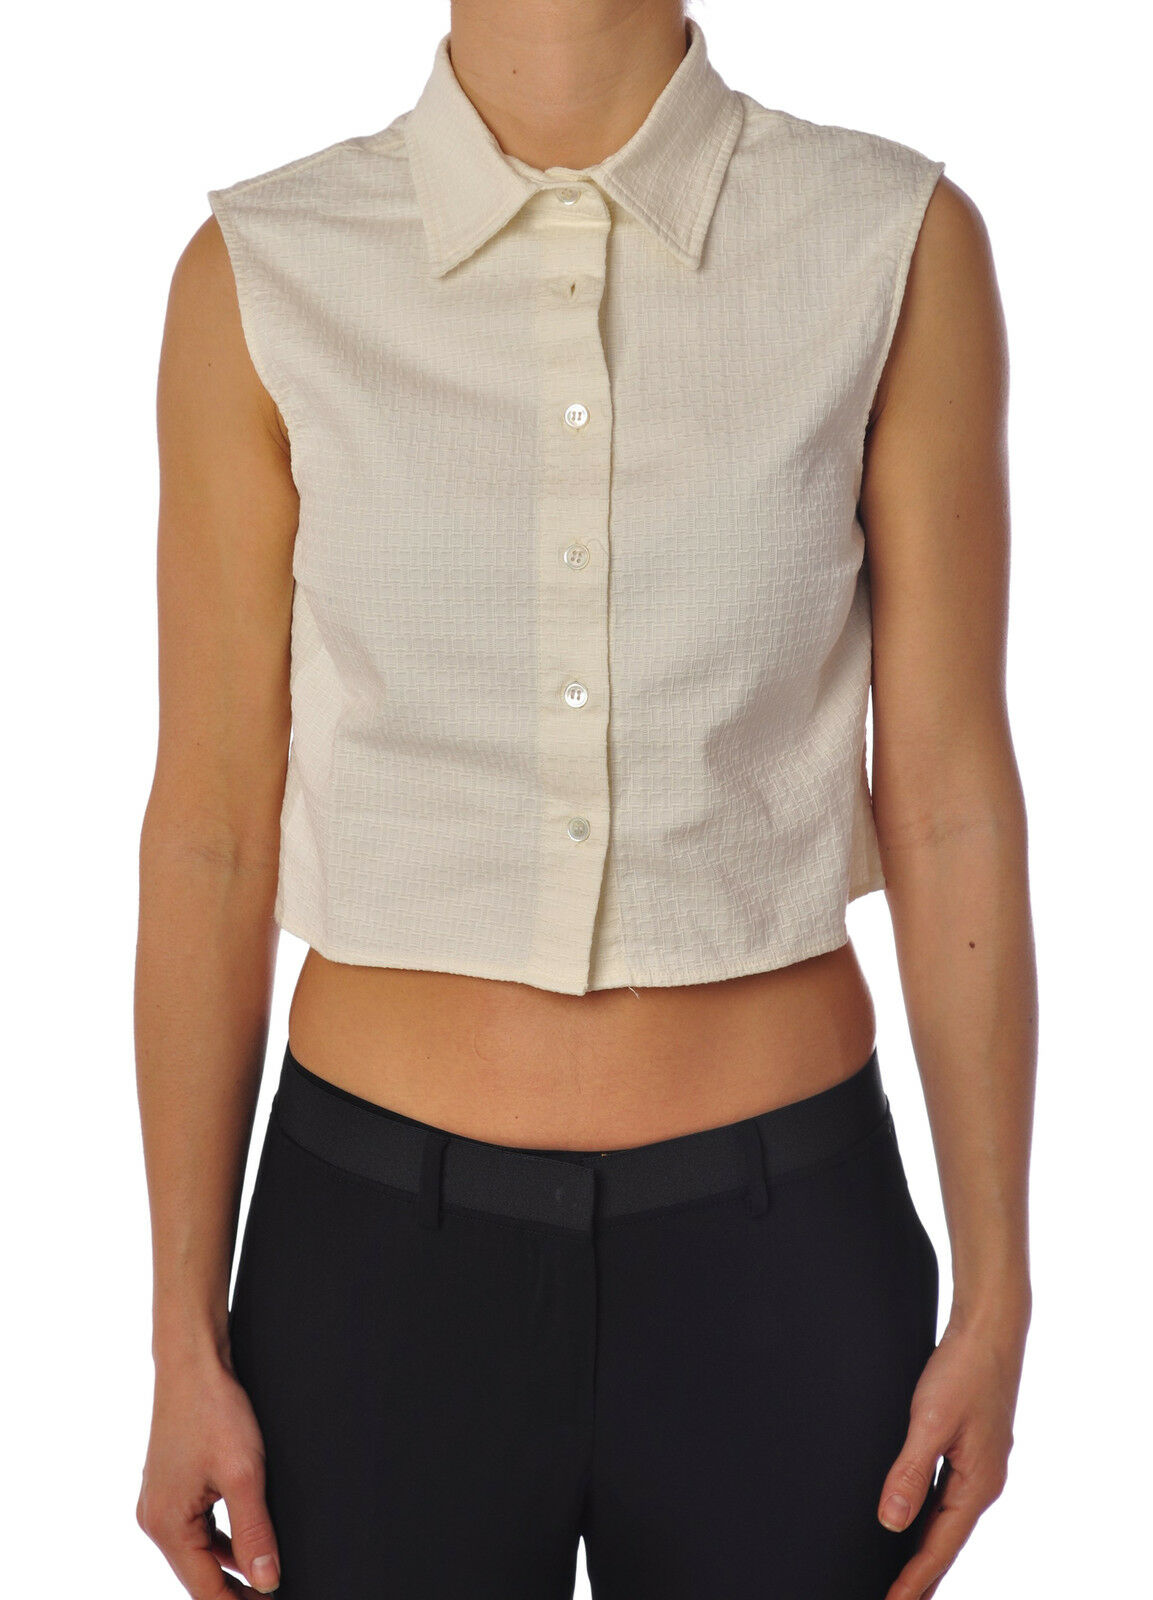 Department 5  -  Blouses - - Female - Weiß - Blouses 1556122A184305 65fac2